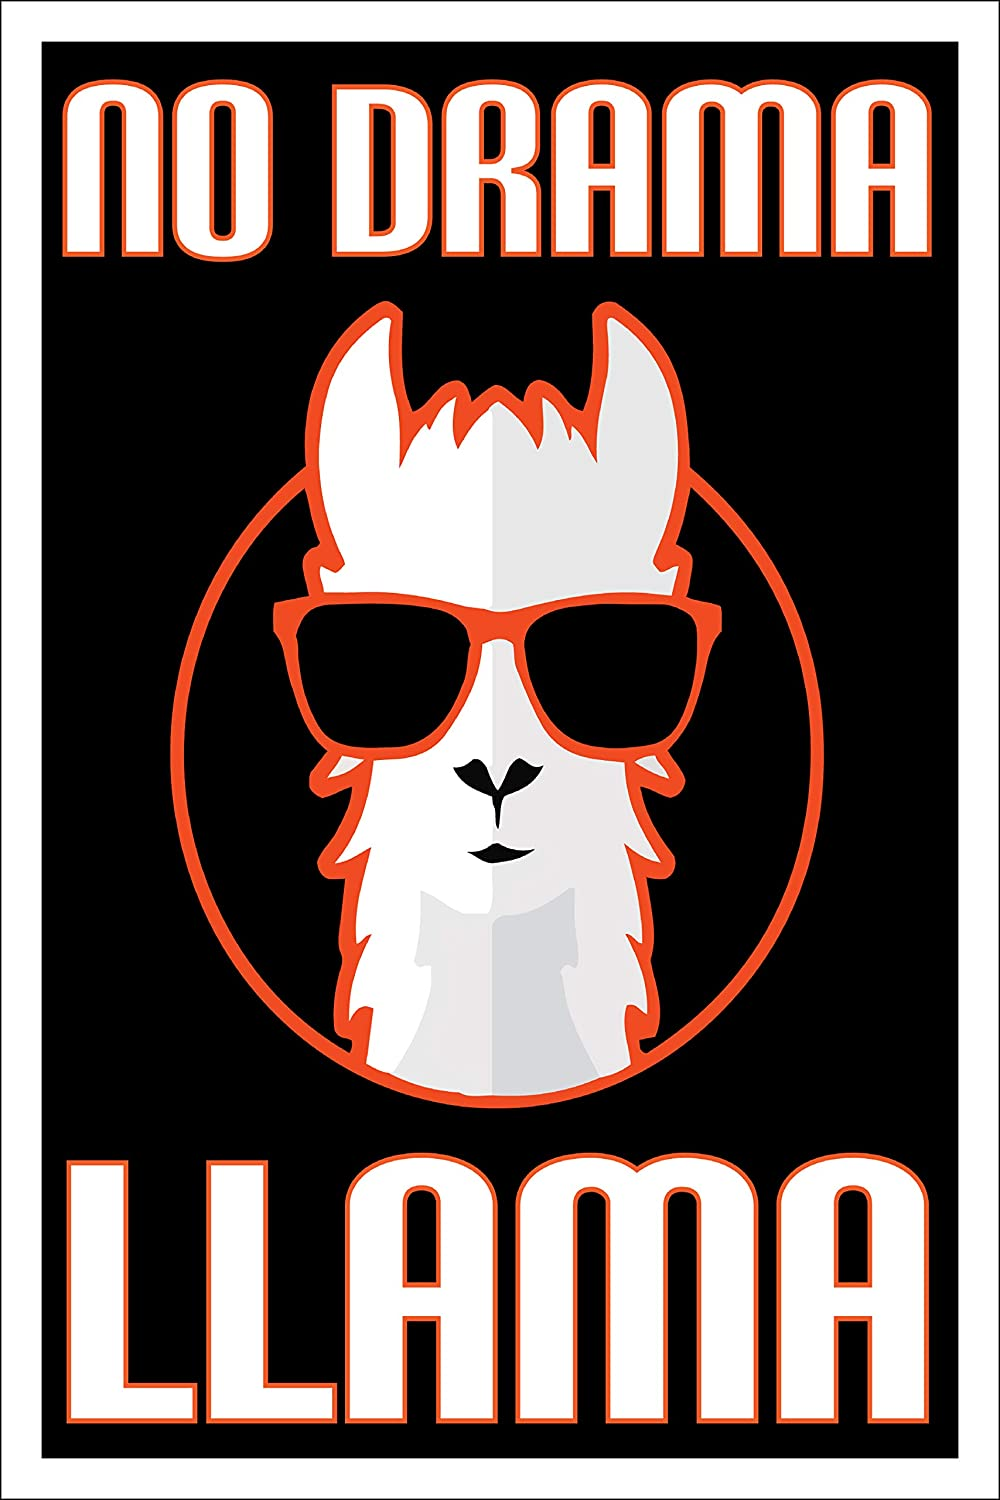 Spitzy's No Drama Llama Funny Poster, 12x18 Inches, Decoration for Bedroom, Boys and Girls, Funny Rhyming Quote Wall Decor